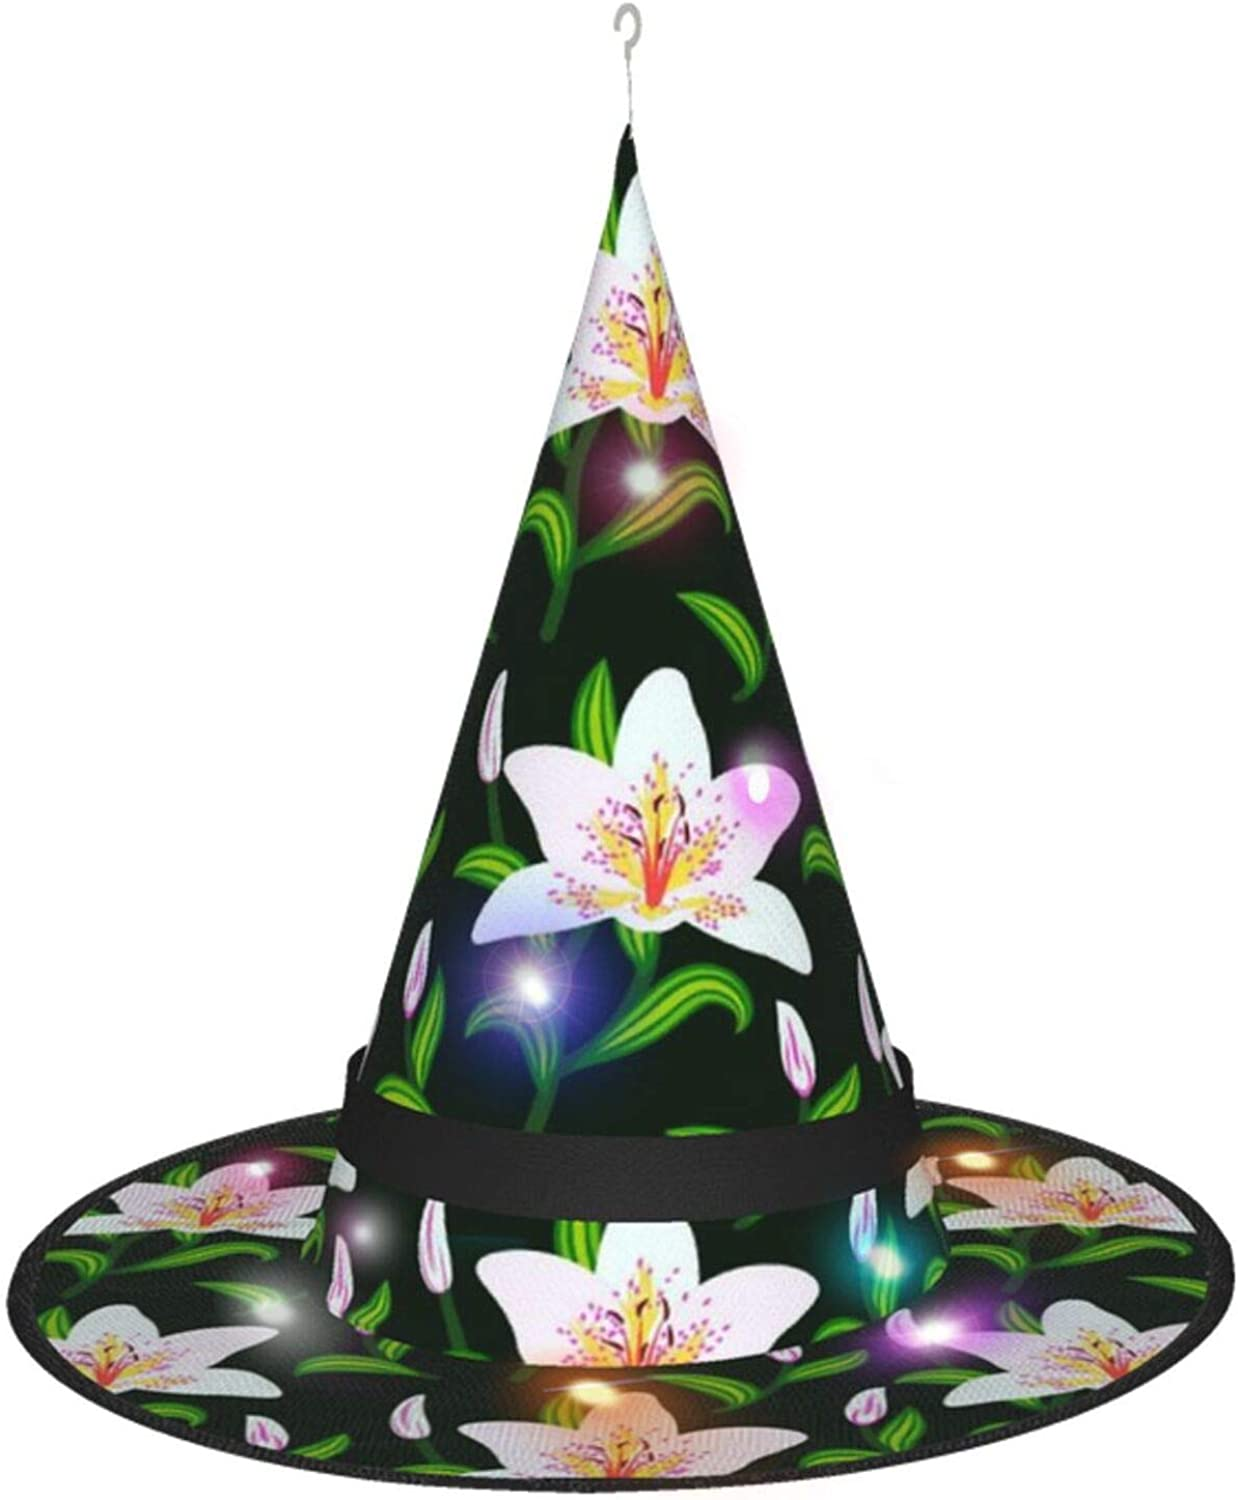 Lily Flowers Halloween Witch Hat Oakland Mall 5 ☆ popular Costume Accessory wit for Party